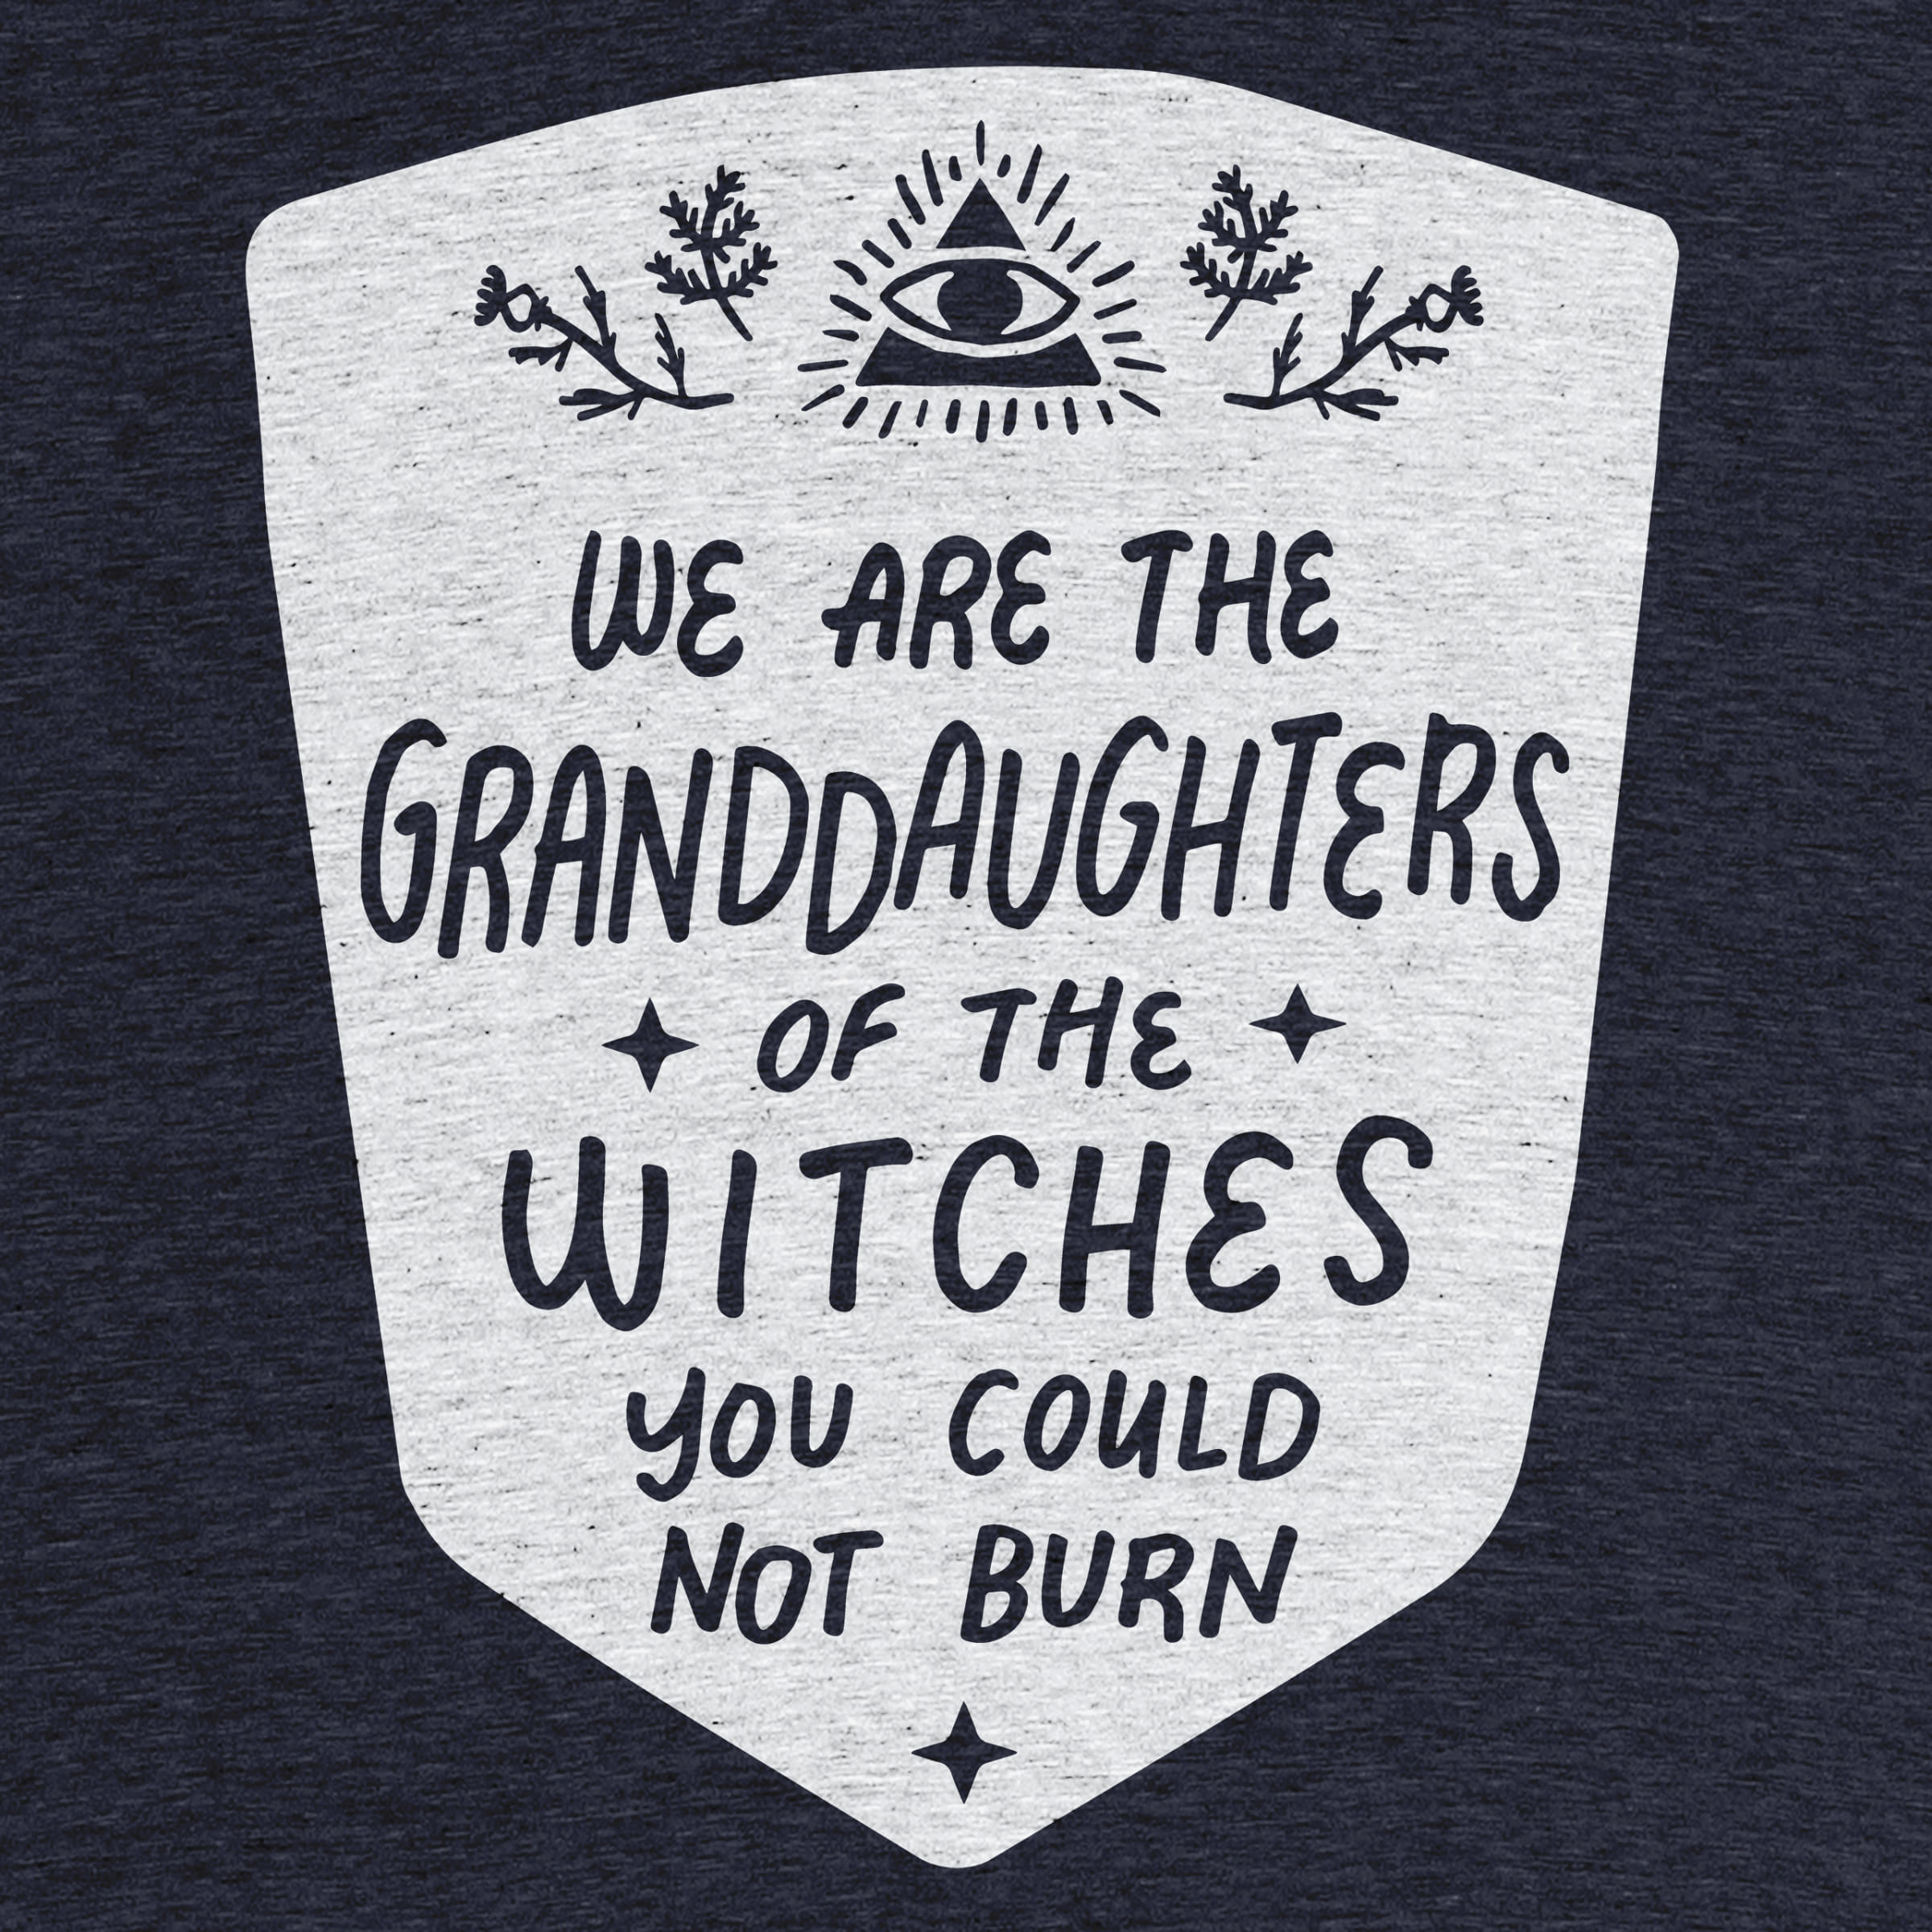 Cotton Bureau: We Are The Granddaughters